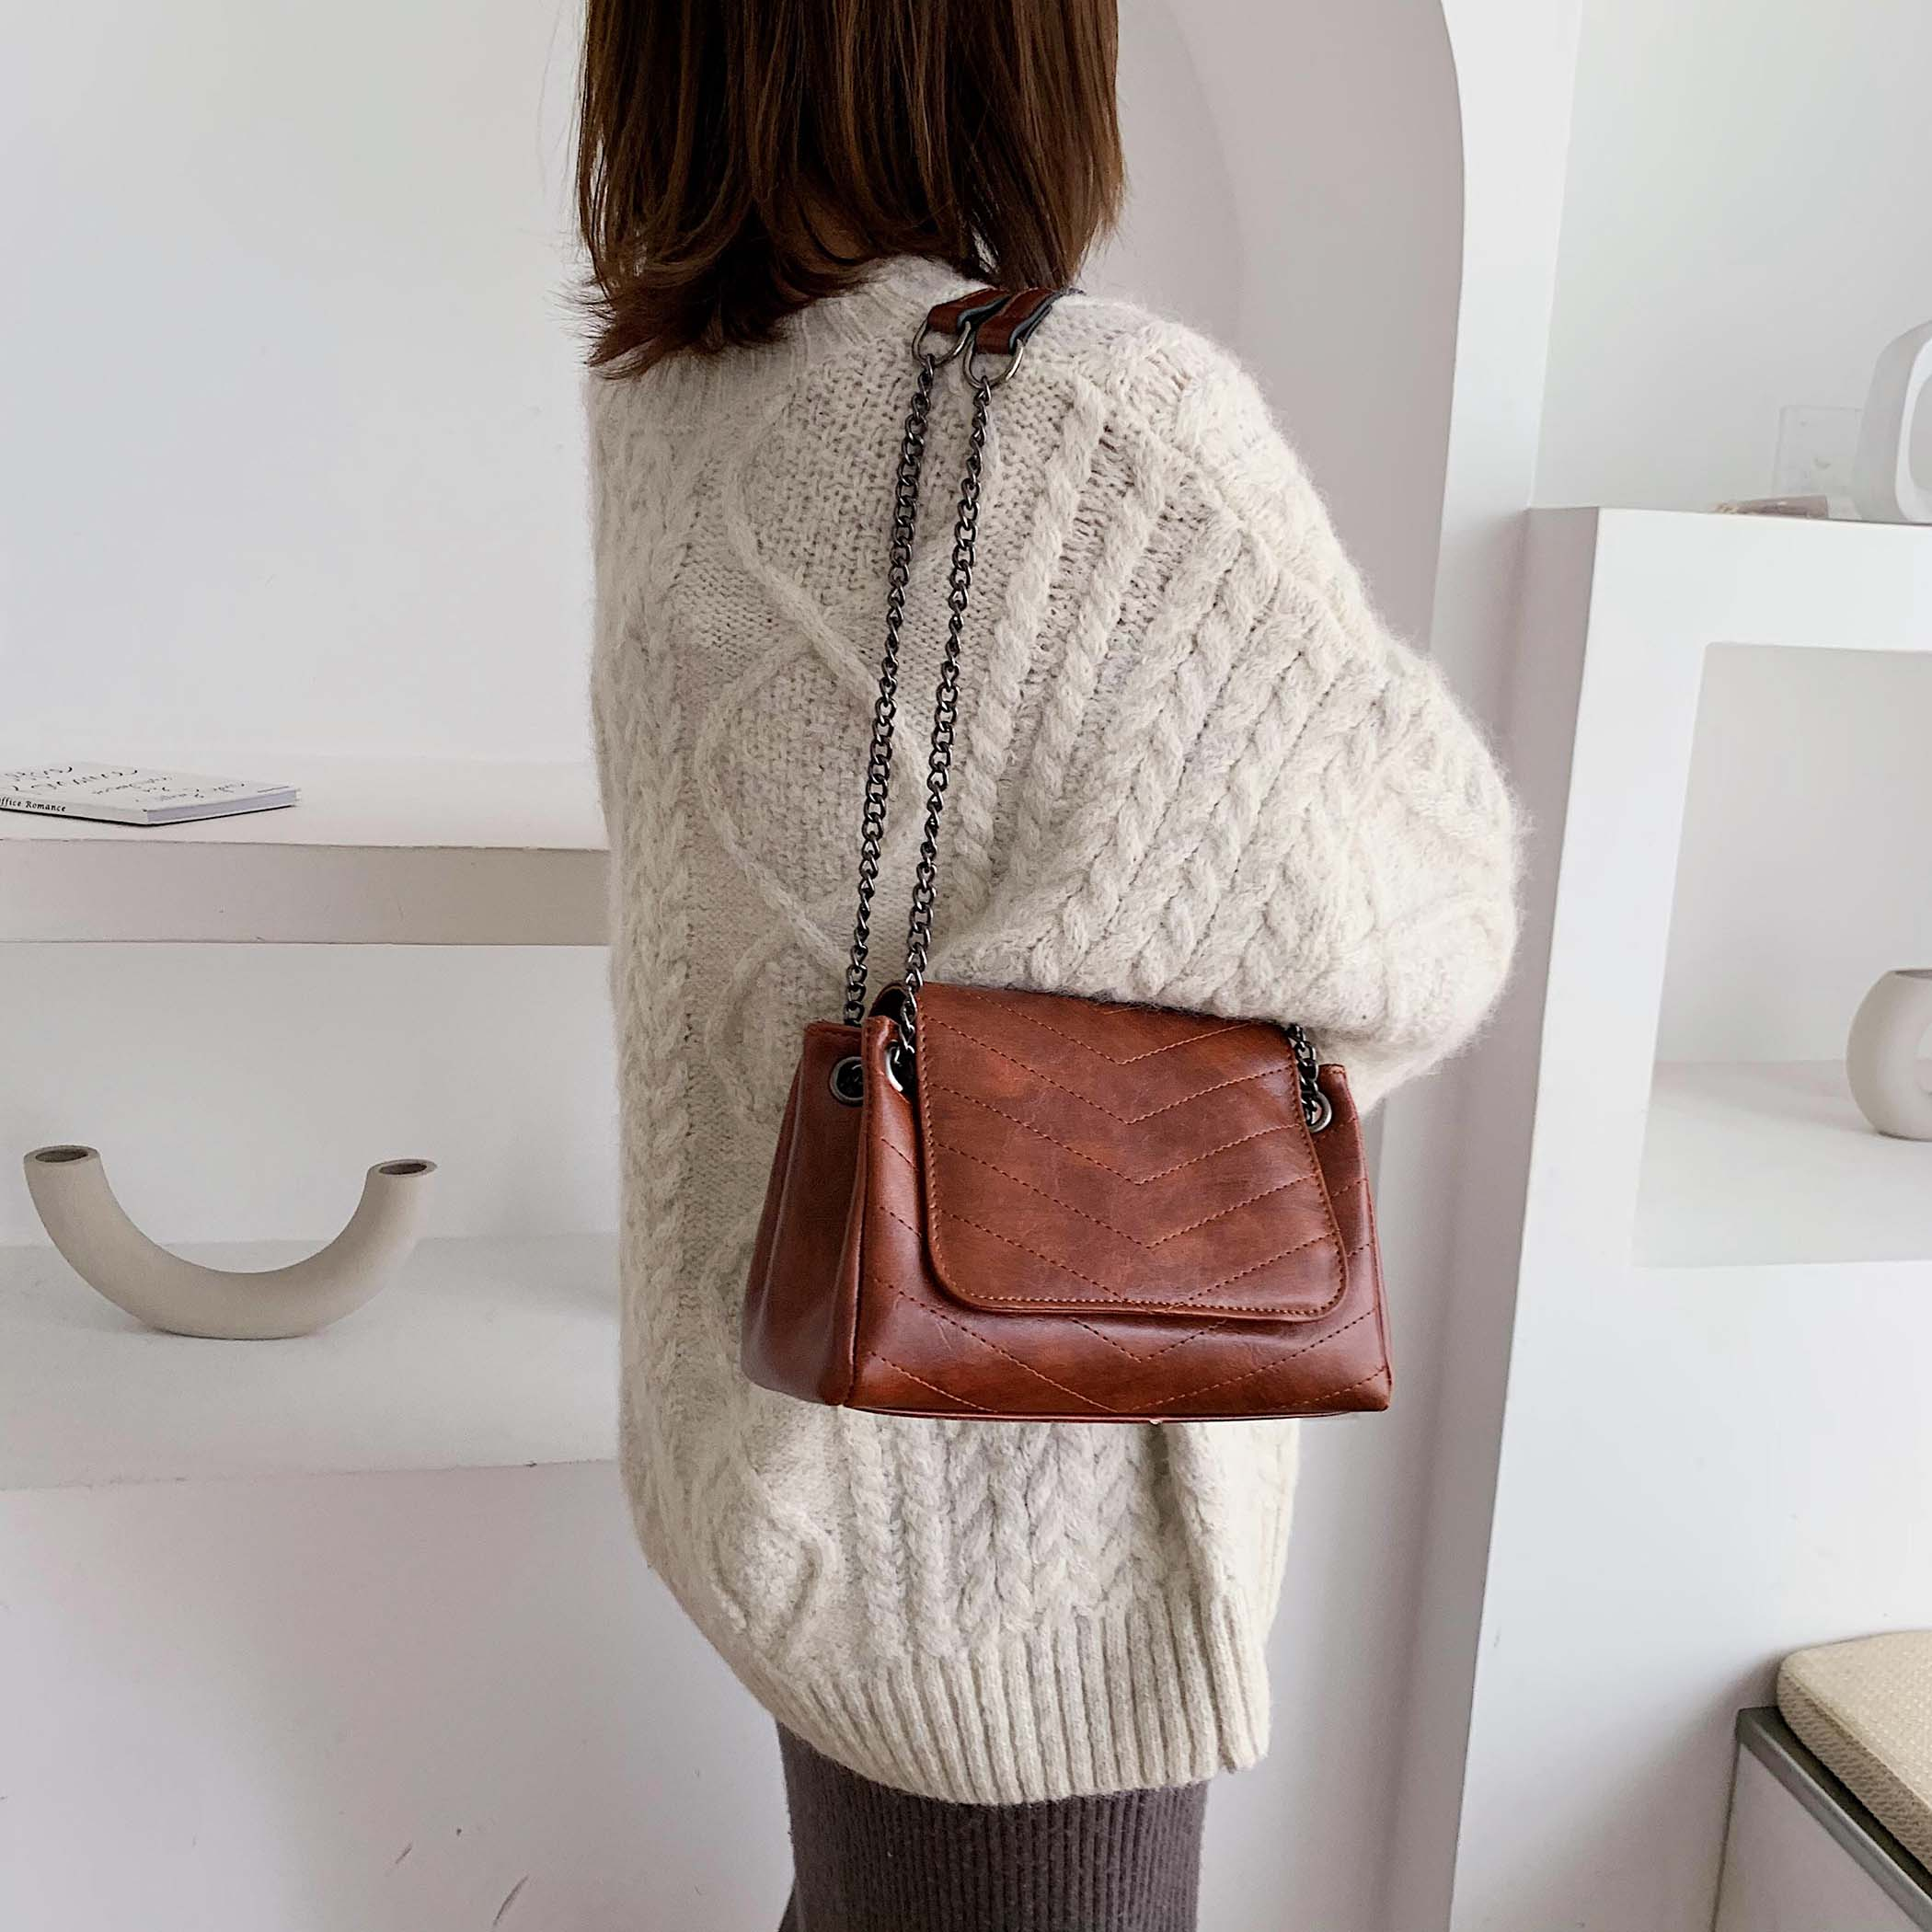 Solid Color Chain PU Leather Shoulder Bags For Women 2019 High Quality Crossbody Messenger Bag Lady Handbags Hand Bag 1